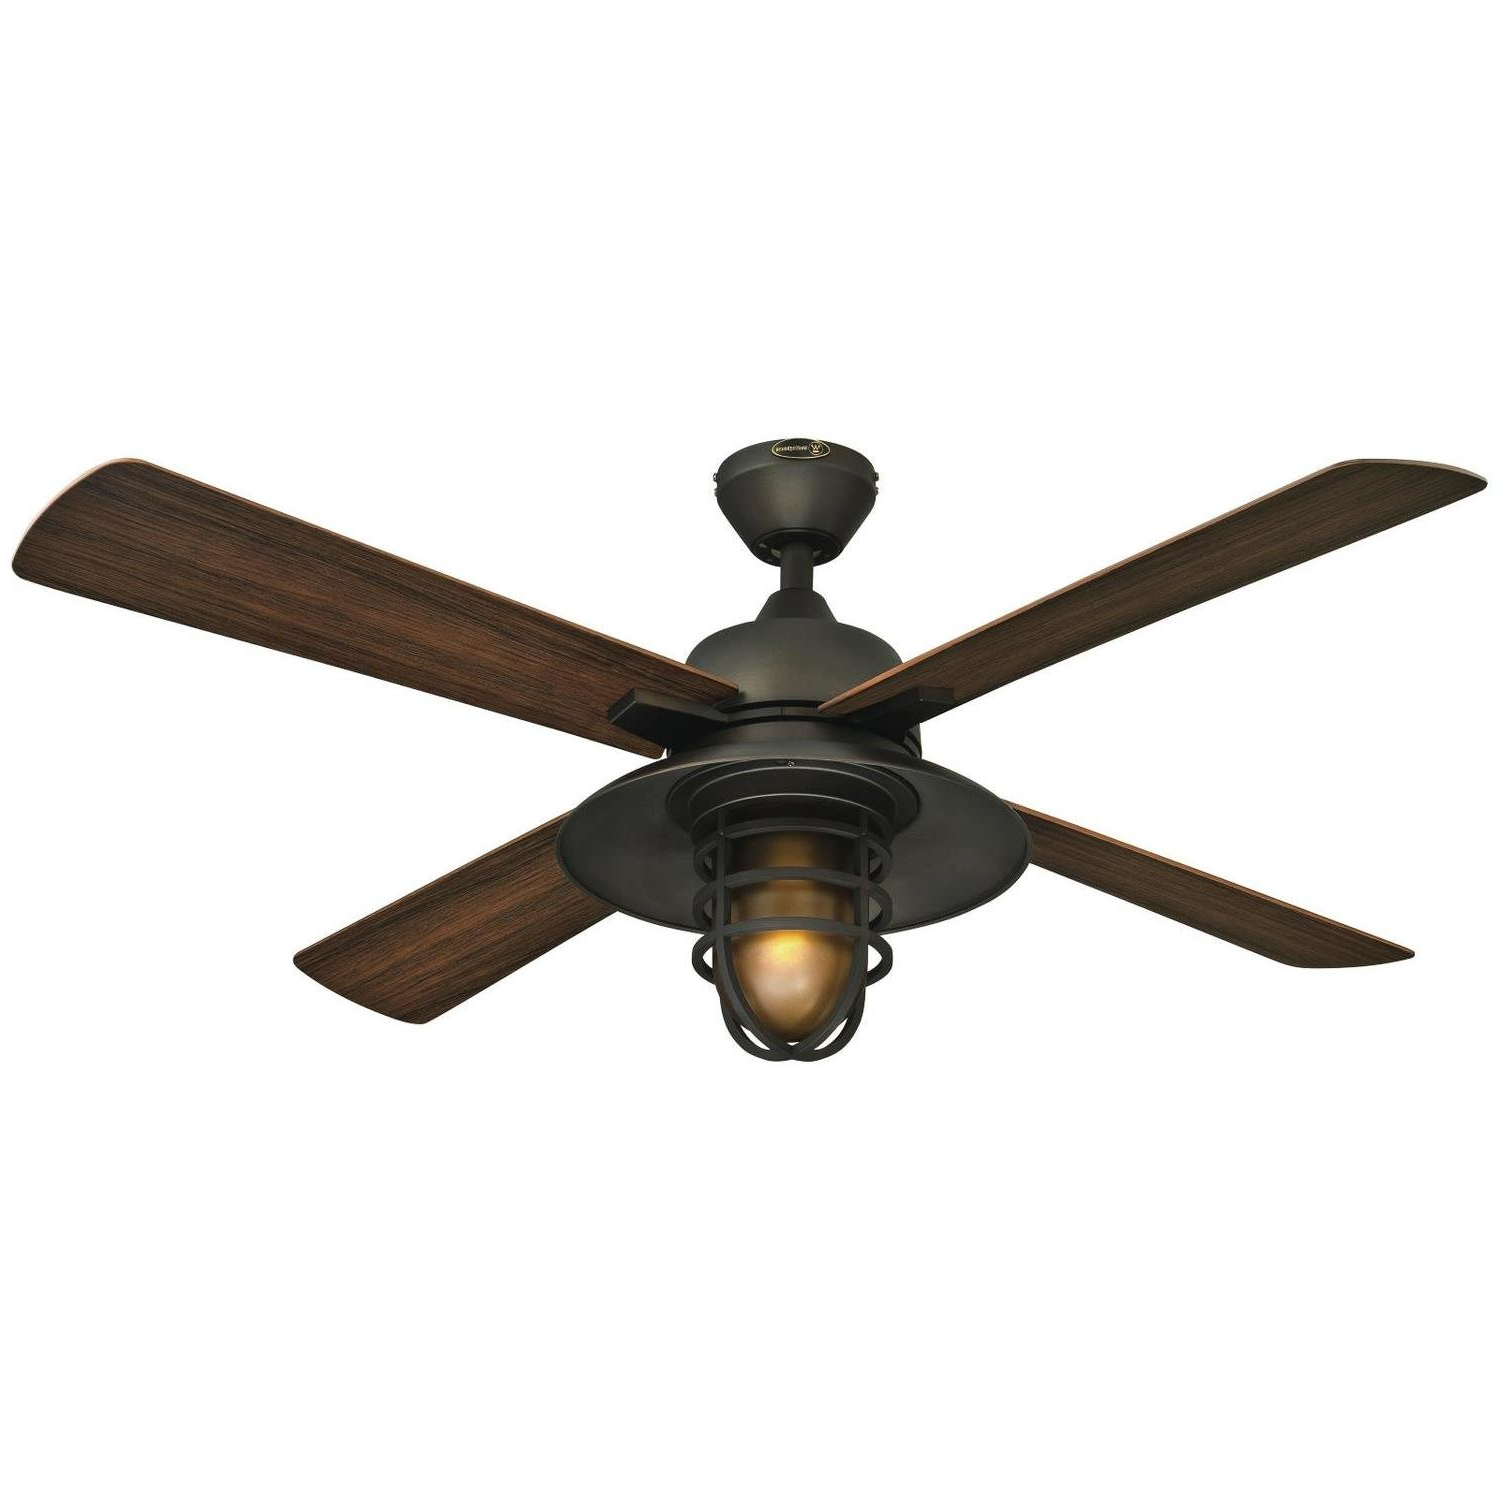 "Most Recent 52"" Barcus 4 Blade Ceiling Fan, Light Kit Included Within Fredericksen 5 Blade Ceiling Fans (View 18 of 20)"